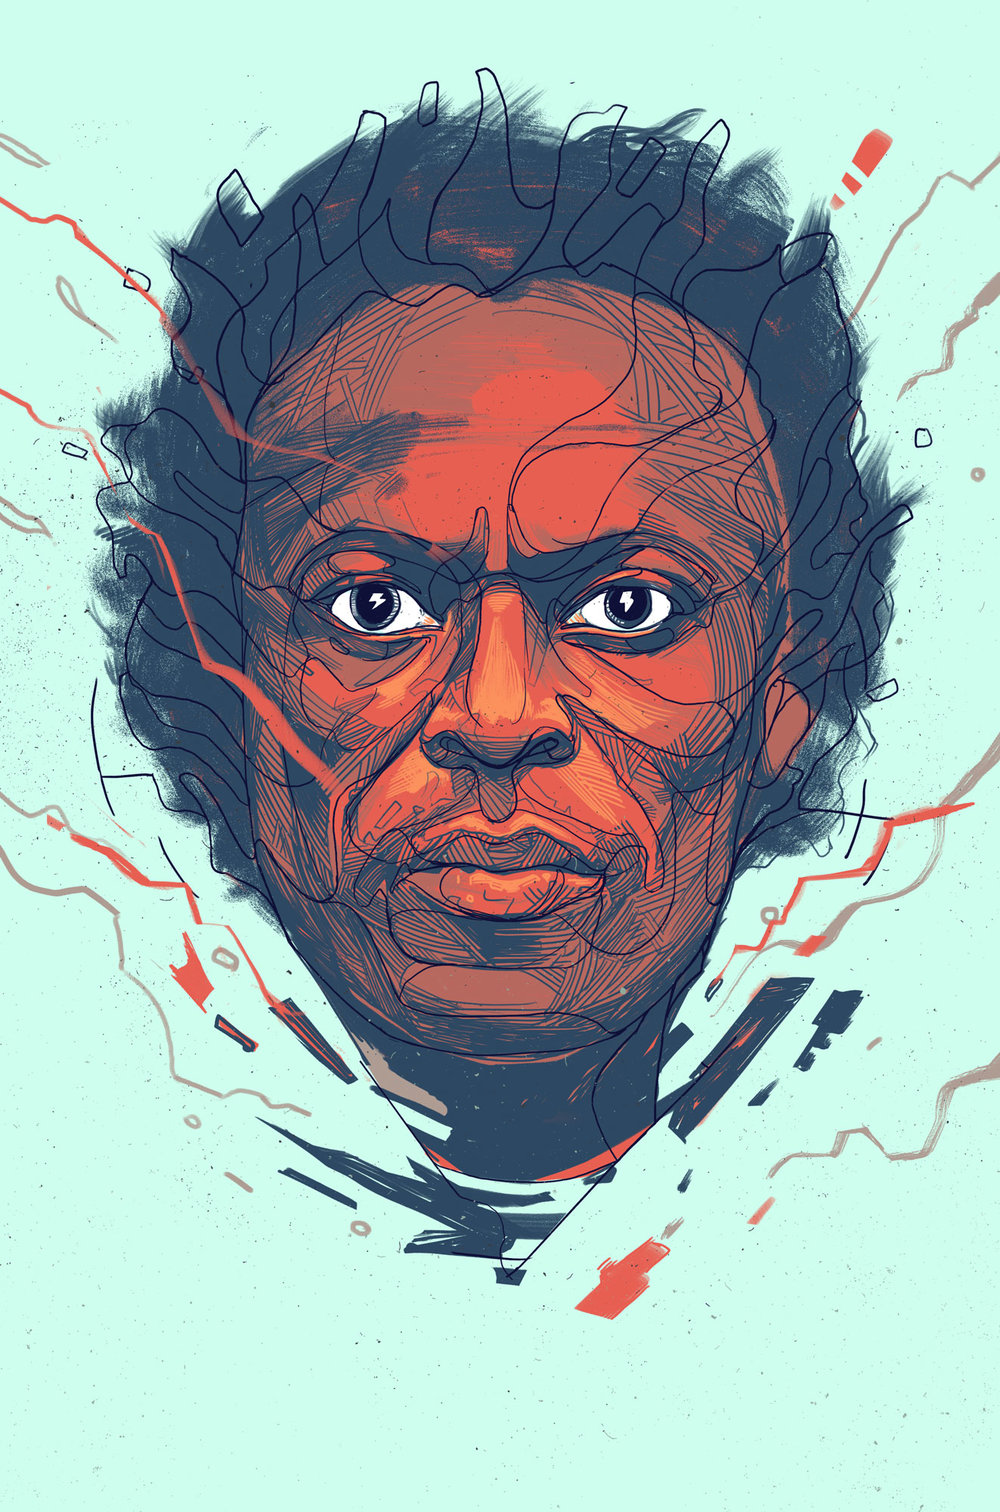 THE ELECTRIC SURGE OF MILES DAVIS  - The AtlanticEditorial IllustrationAppears in the July/August 2016 issue.